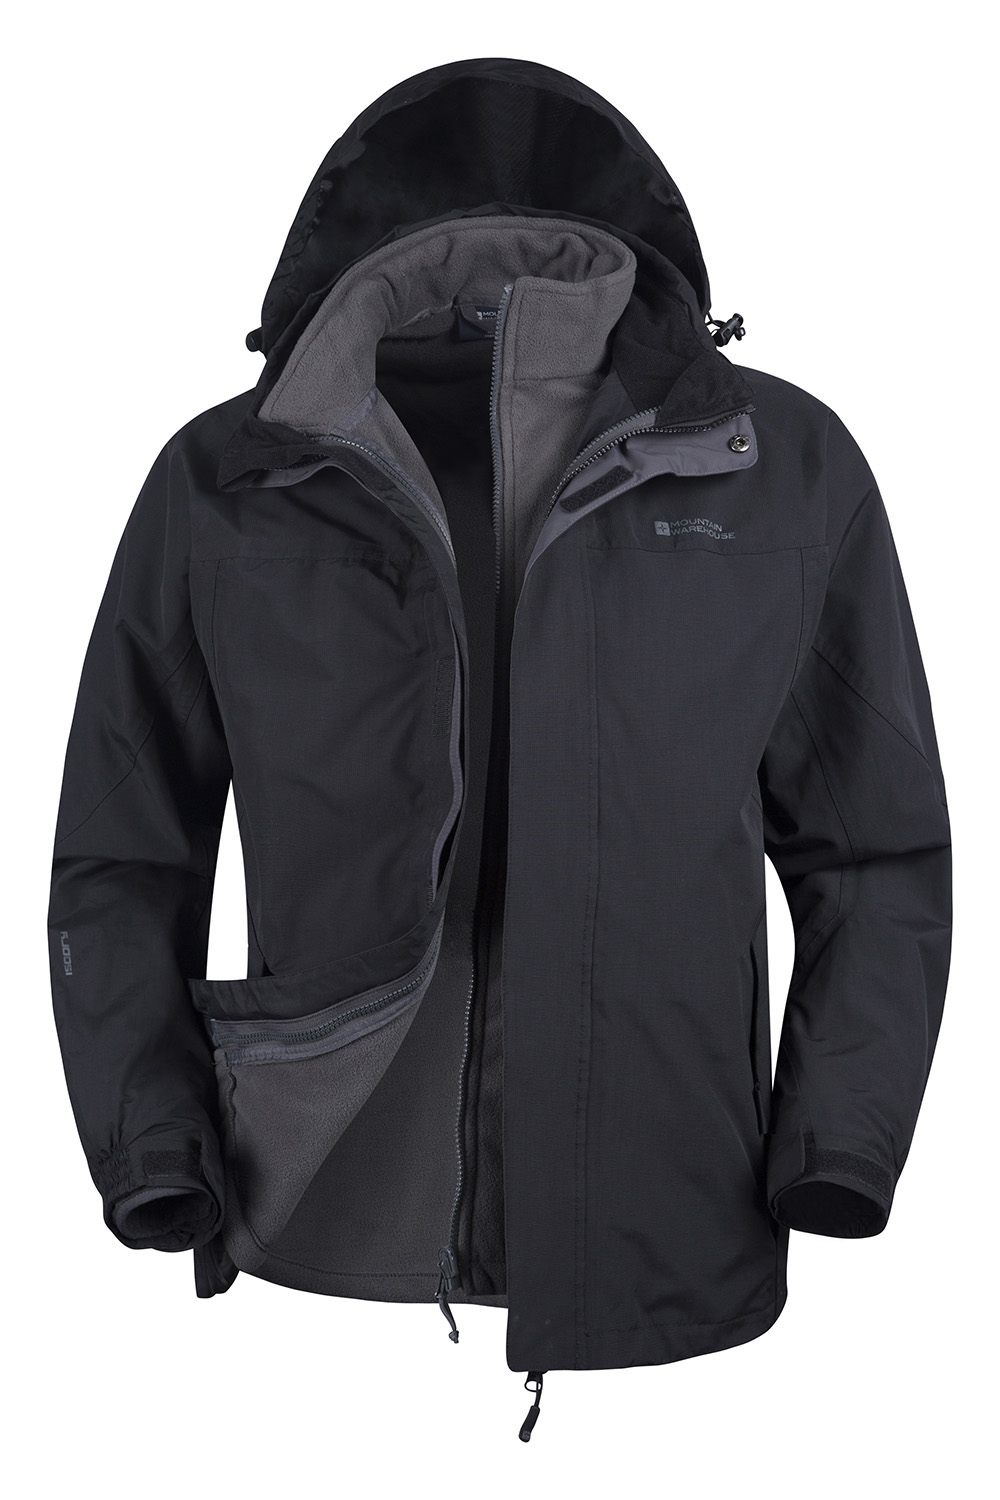 The best way to decide on a waterproof jacket